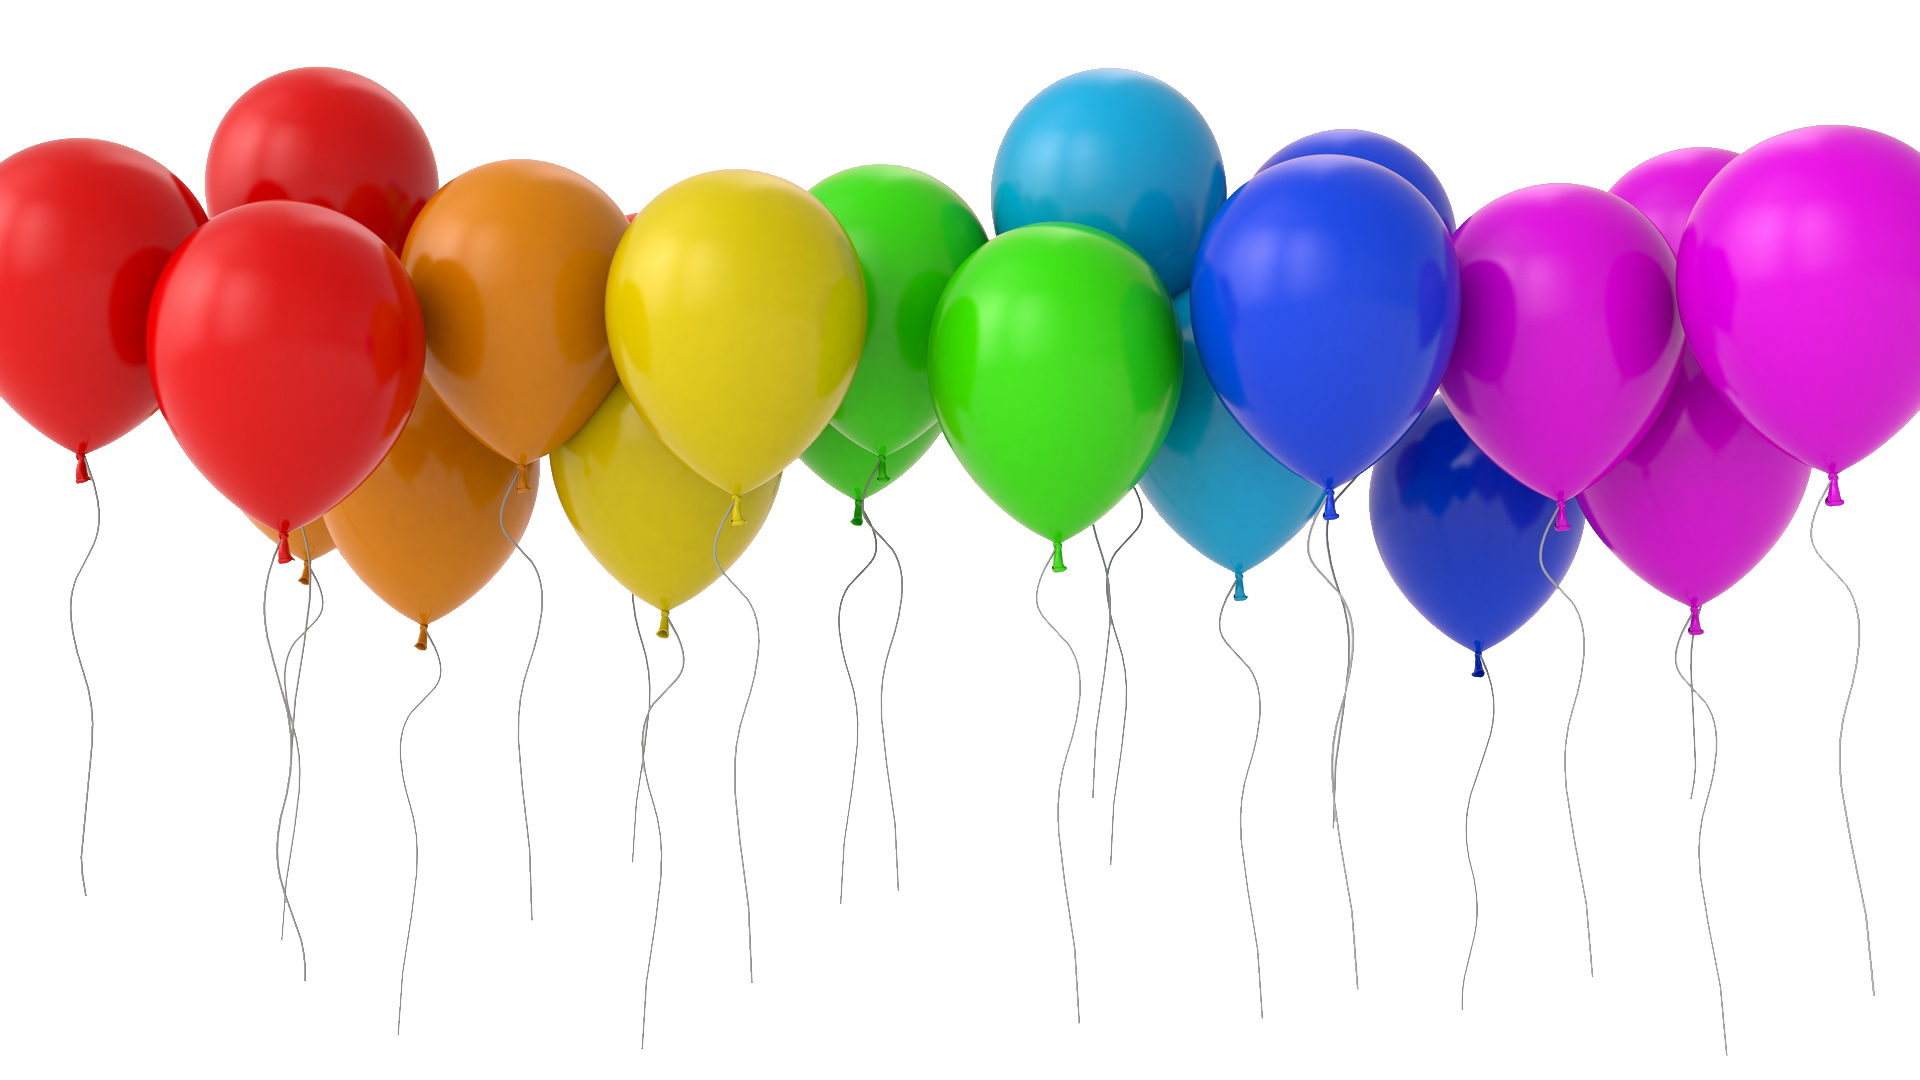 Download Balloons PNG Images Transparent Backgrounds Pictures below.